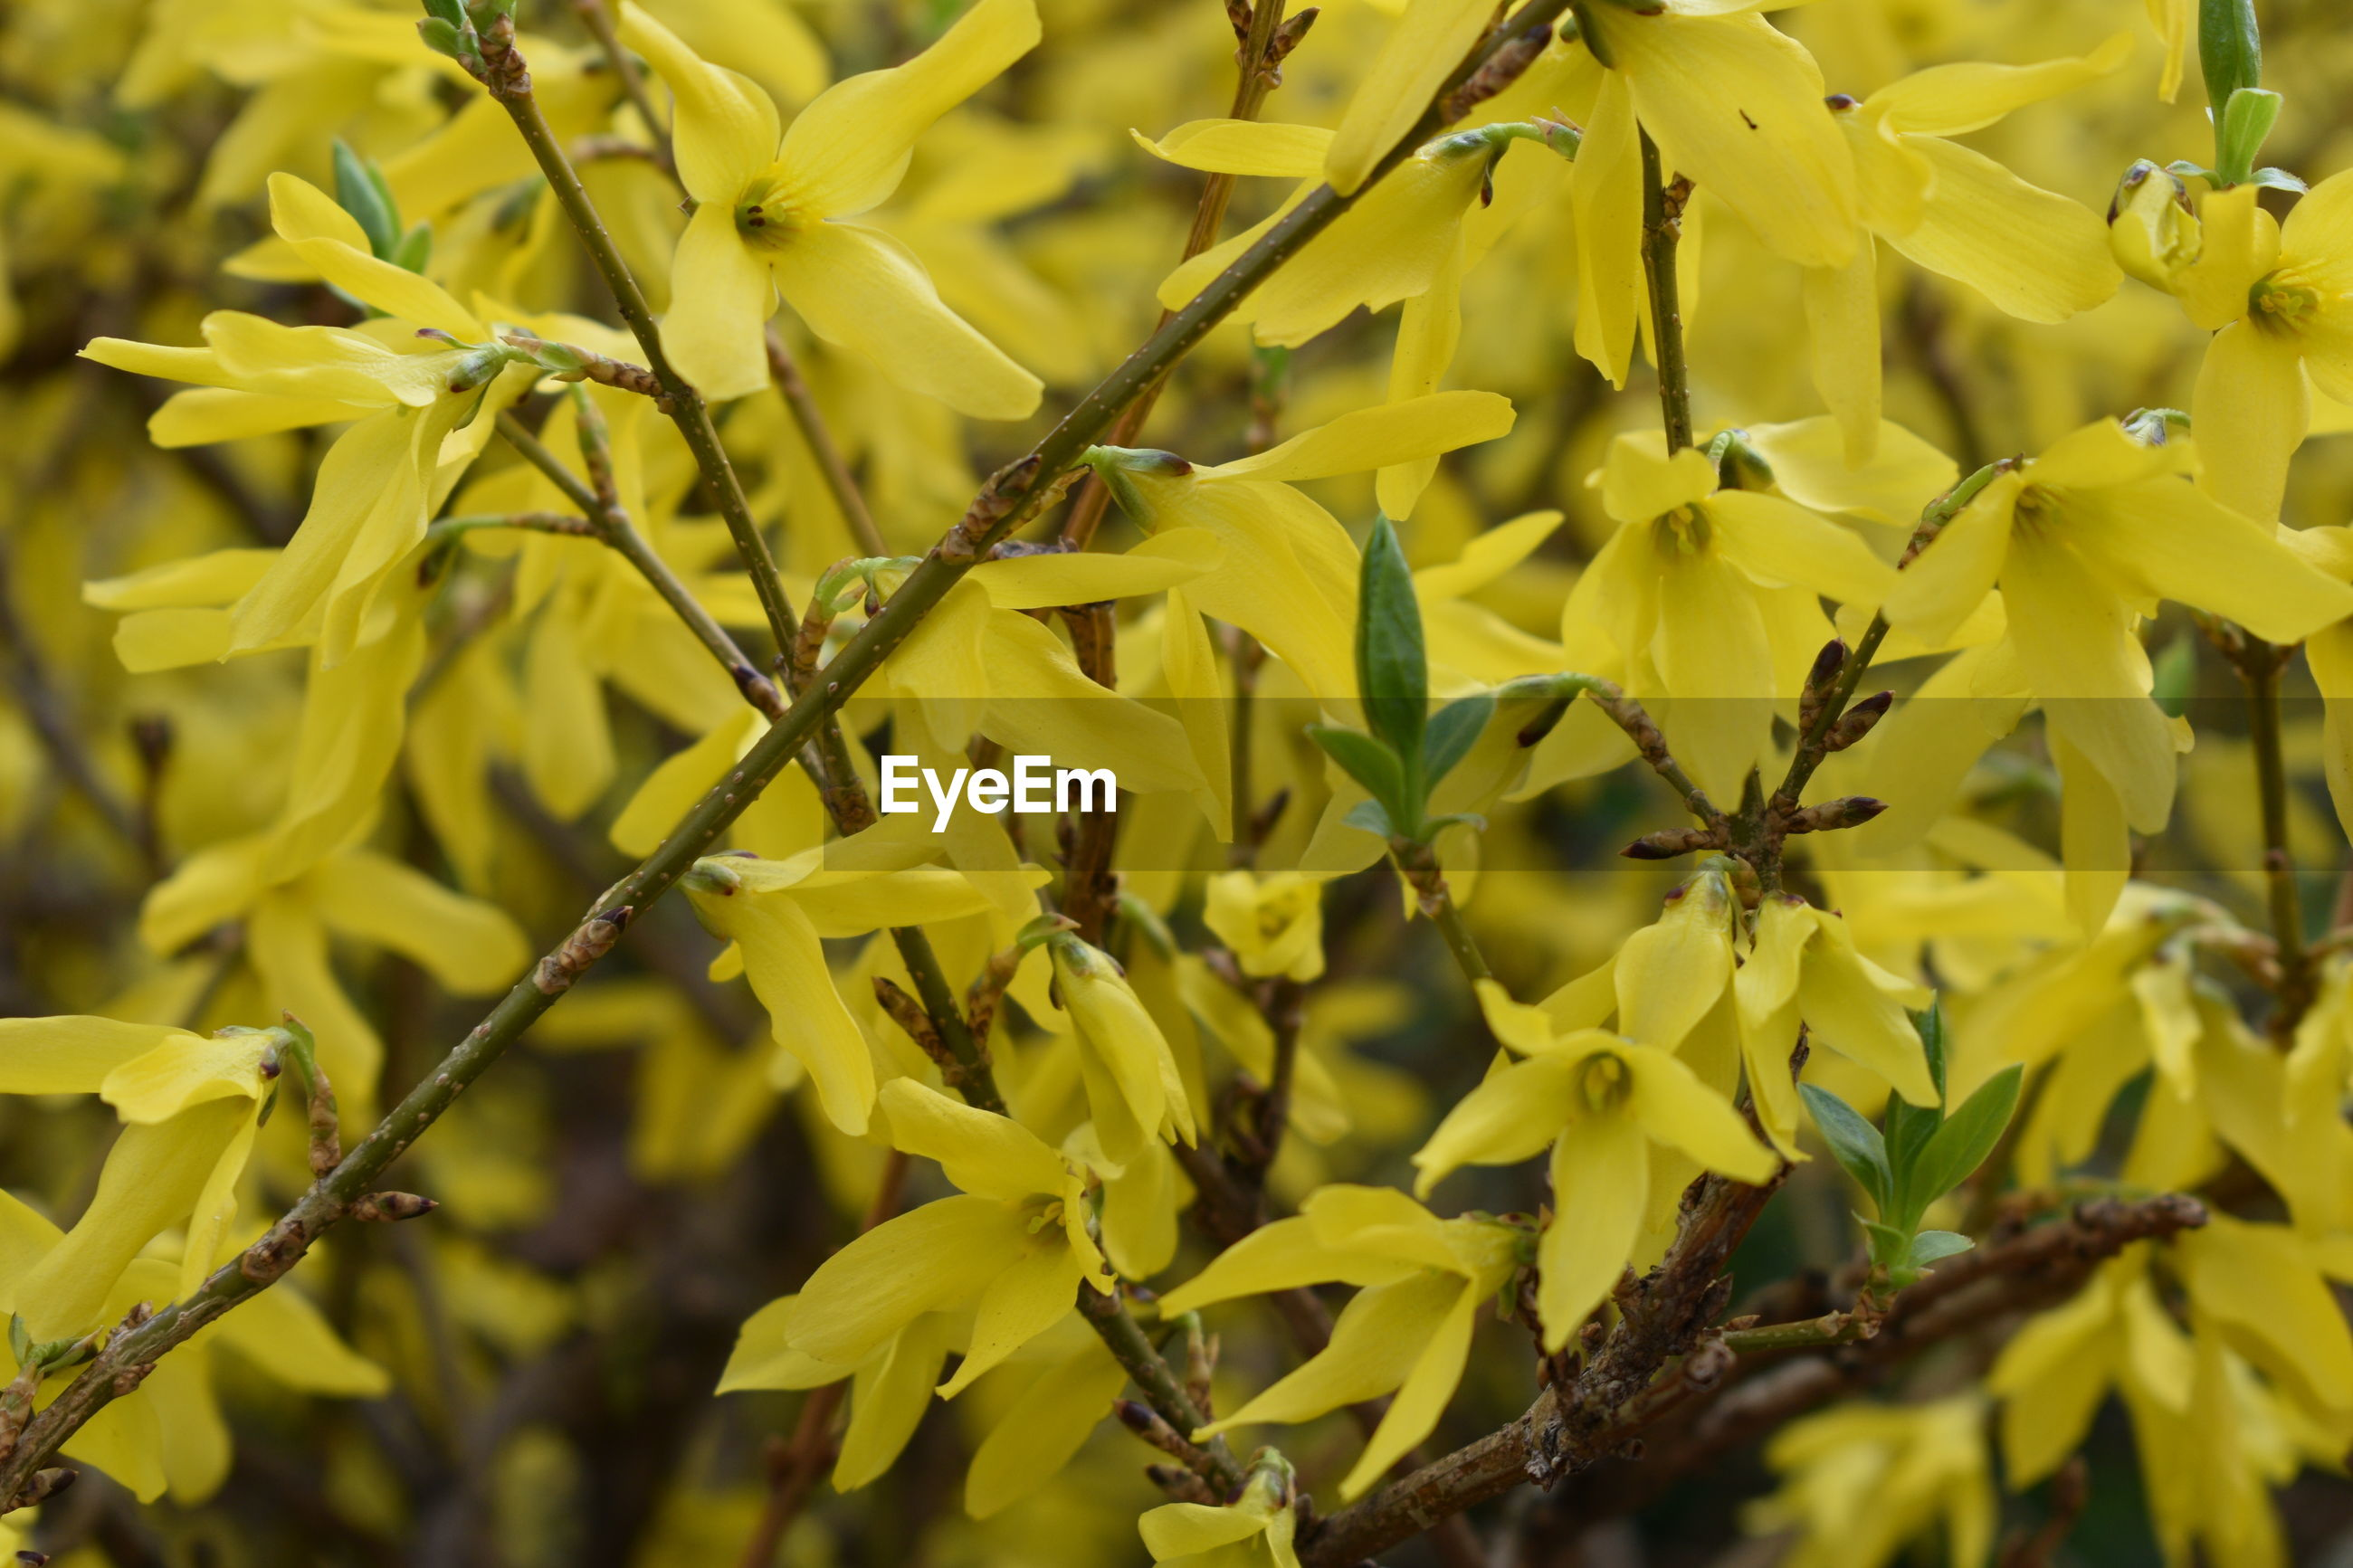 CLOSE-UP OF YELLOW FLOWERING LEAVES ON PLANT